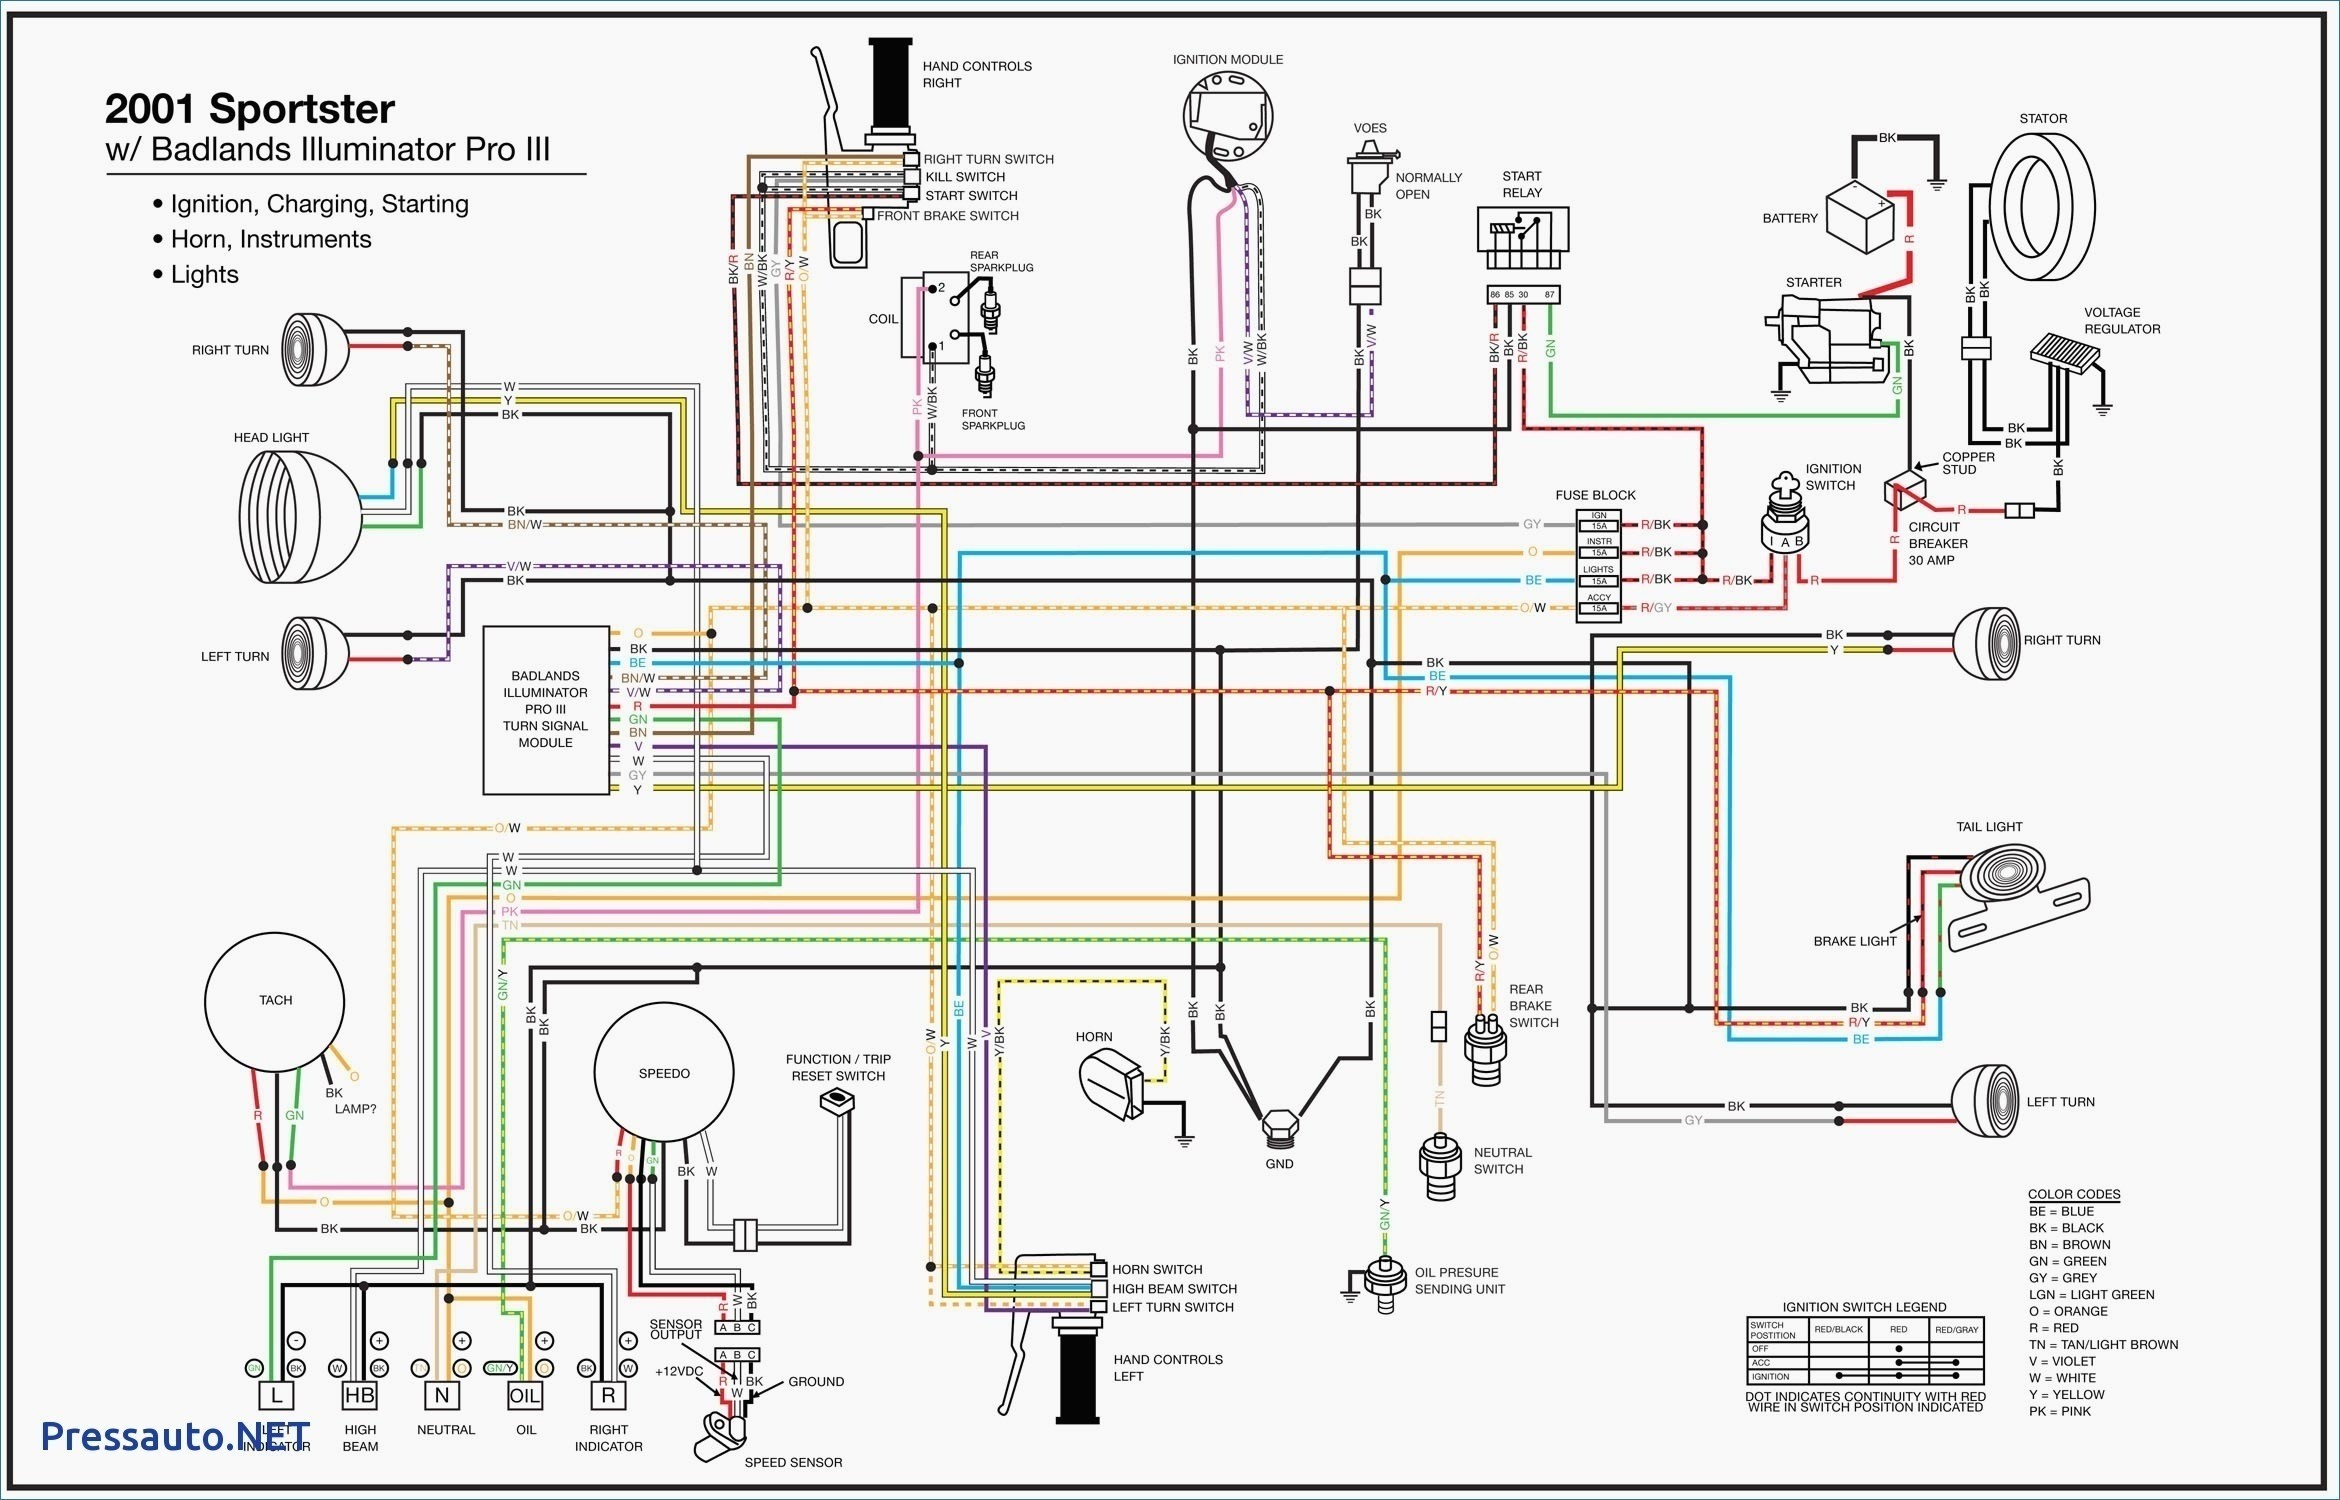 8f324 podtronics wiring diagram wiring resources norton commando wiring-diagram podtronics wiring diagram #7